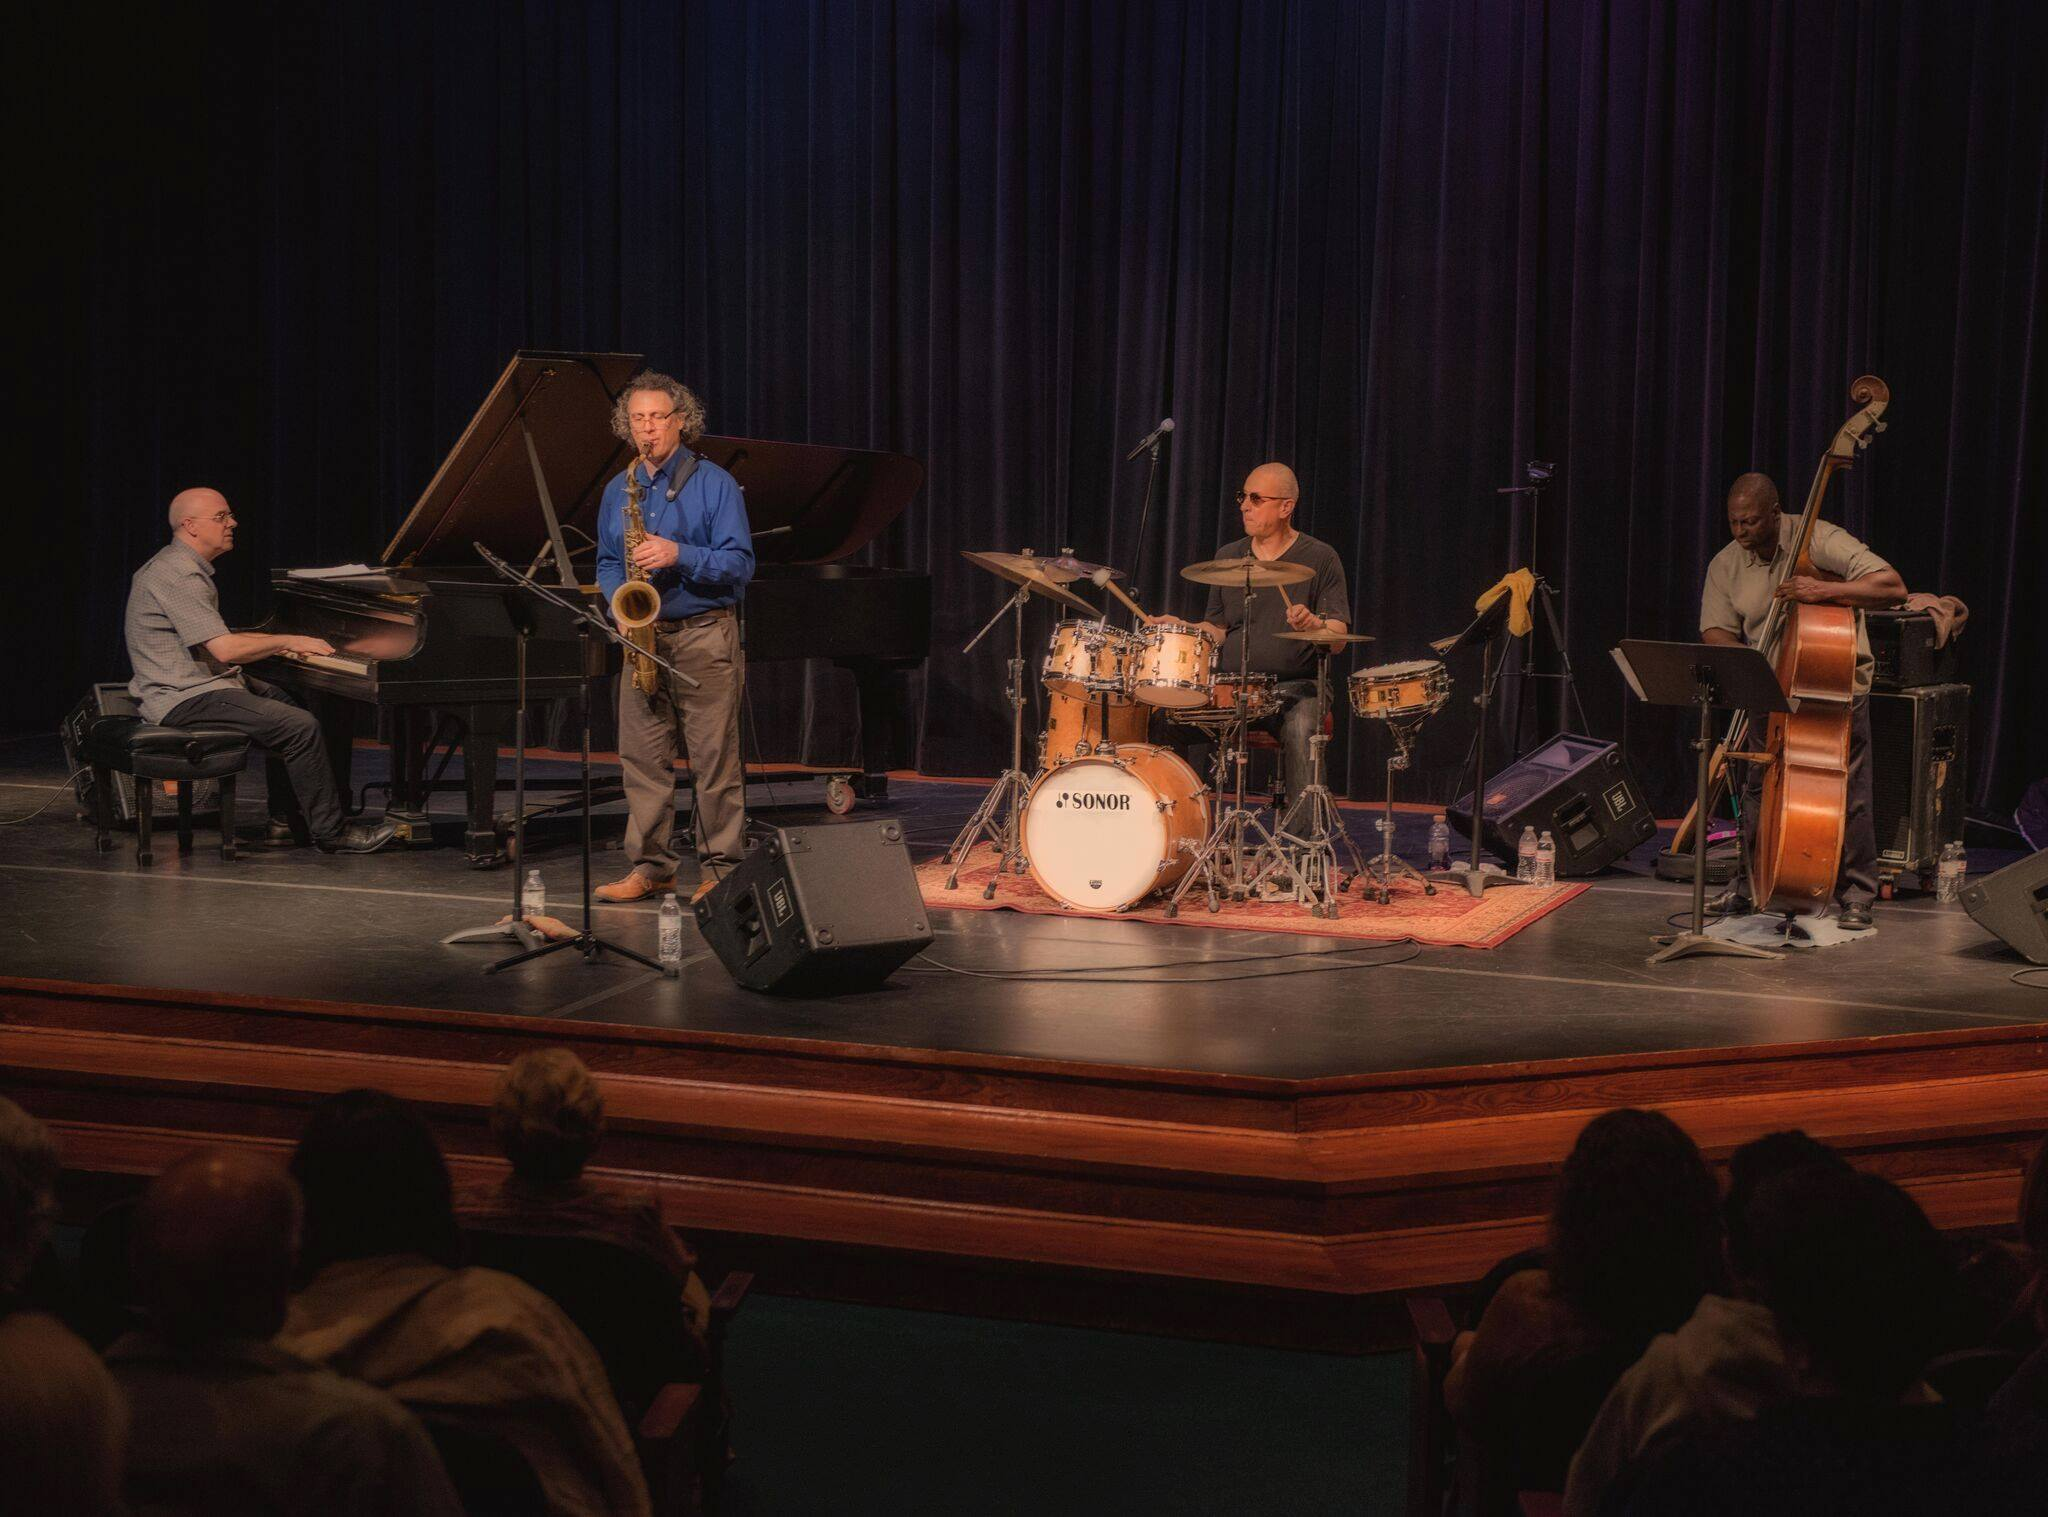 Jae Sinnett's Zero to 60 Quartet performing at the 2017 Williamsburg Concerts